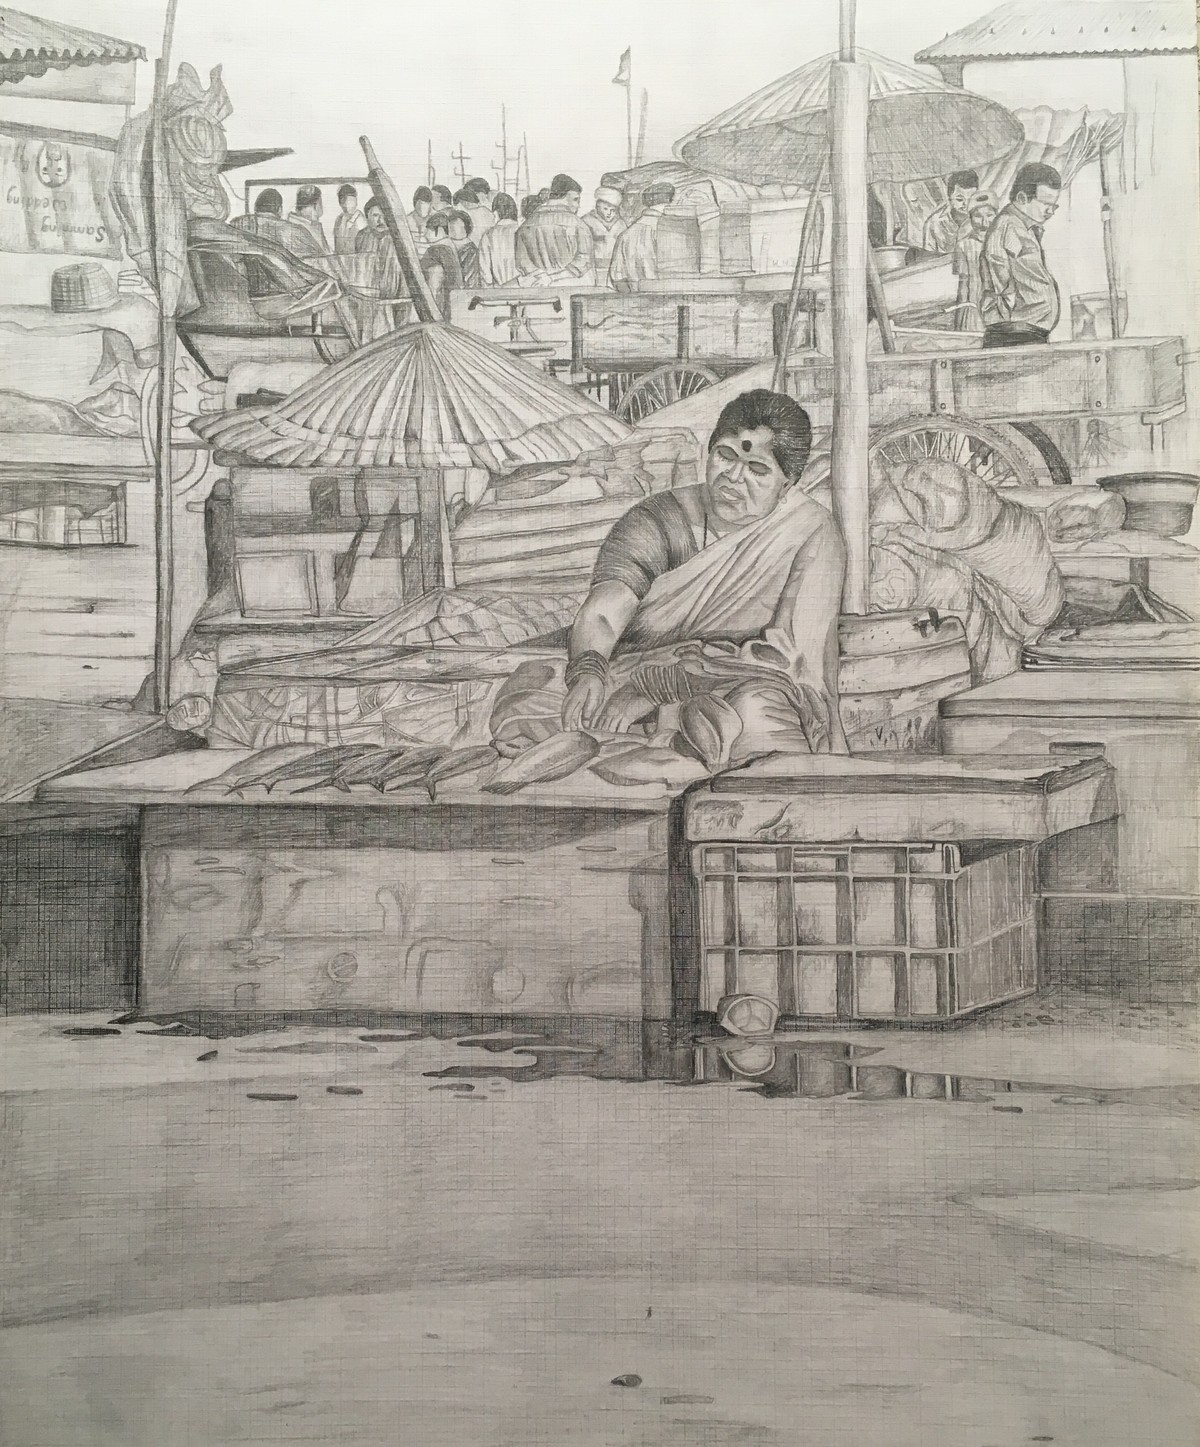 Fishing harbour by shiva prasad reddy illustration drawing pencil on paper brown color